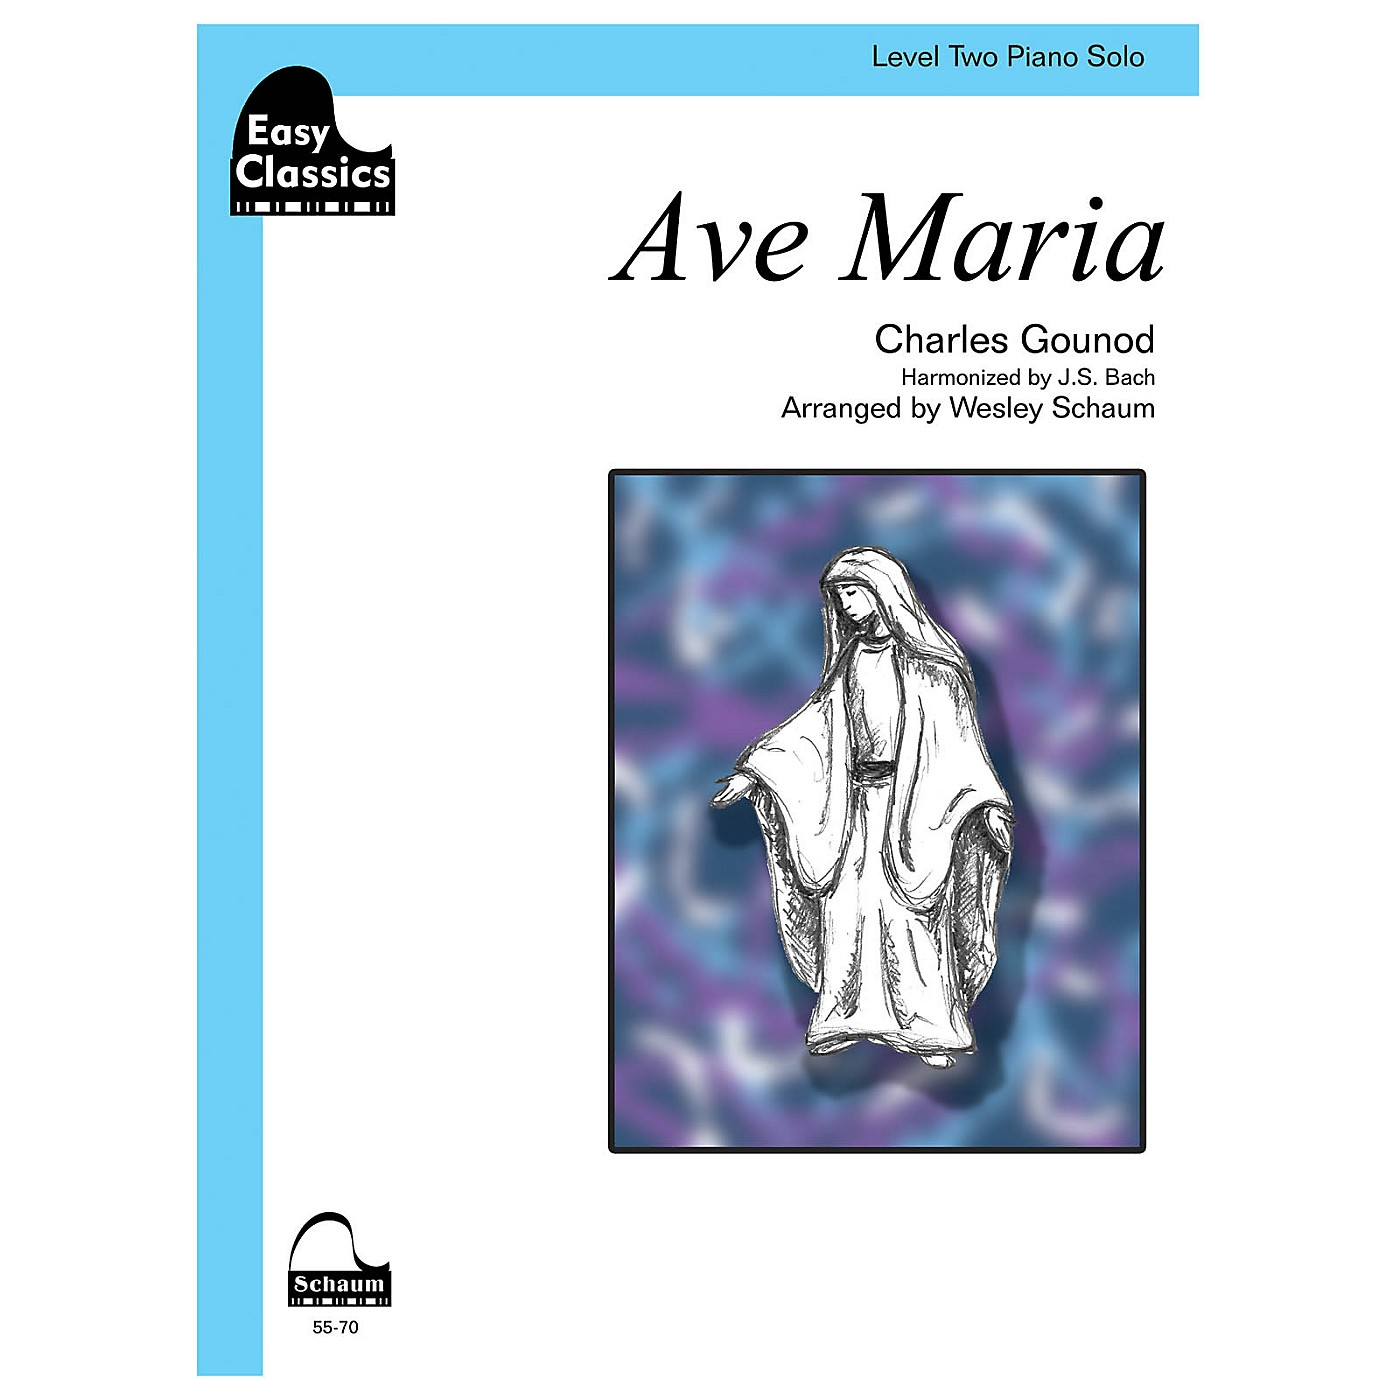 SCHAUM Ave Maria (gounod-bach) Educational Piano Series Softcover thumbnail